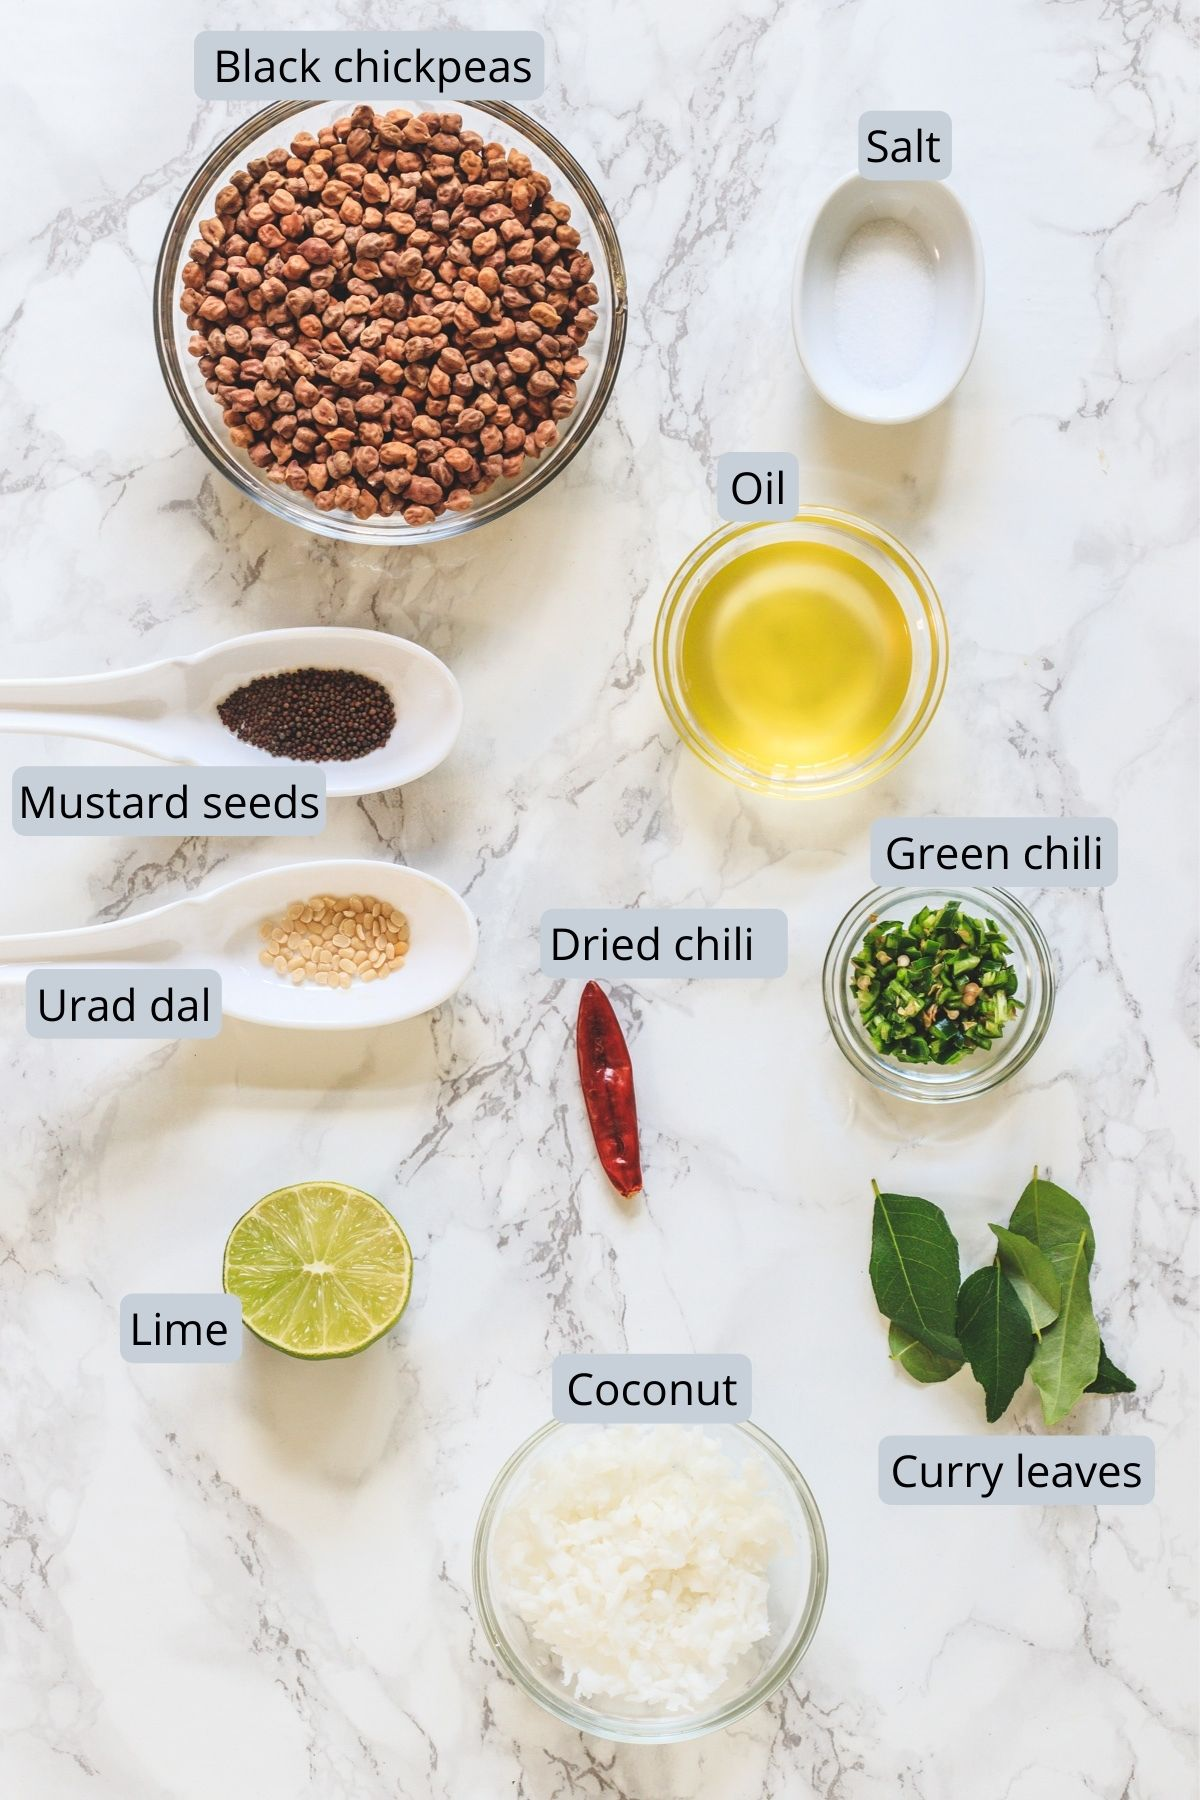 Ingredients used in kala chana sundal includes black chickpeas, coconut, oil, salt, curry leaves, chilies and spices.